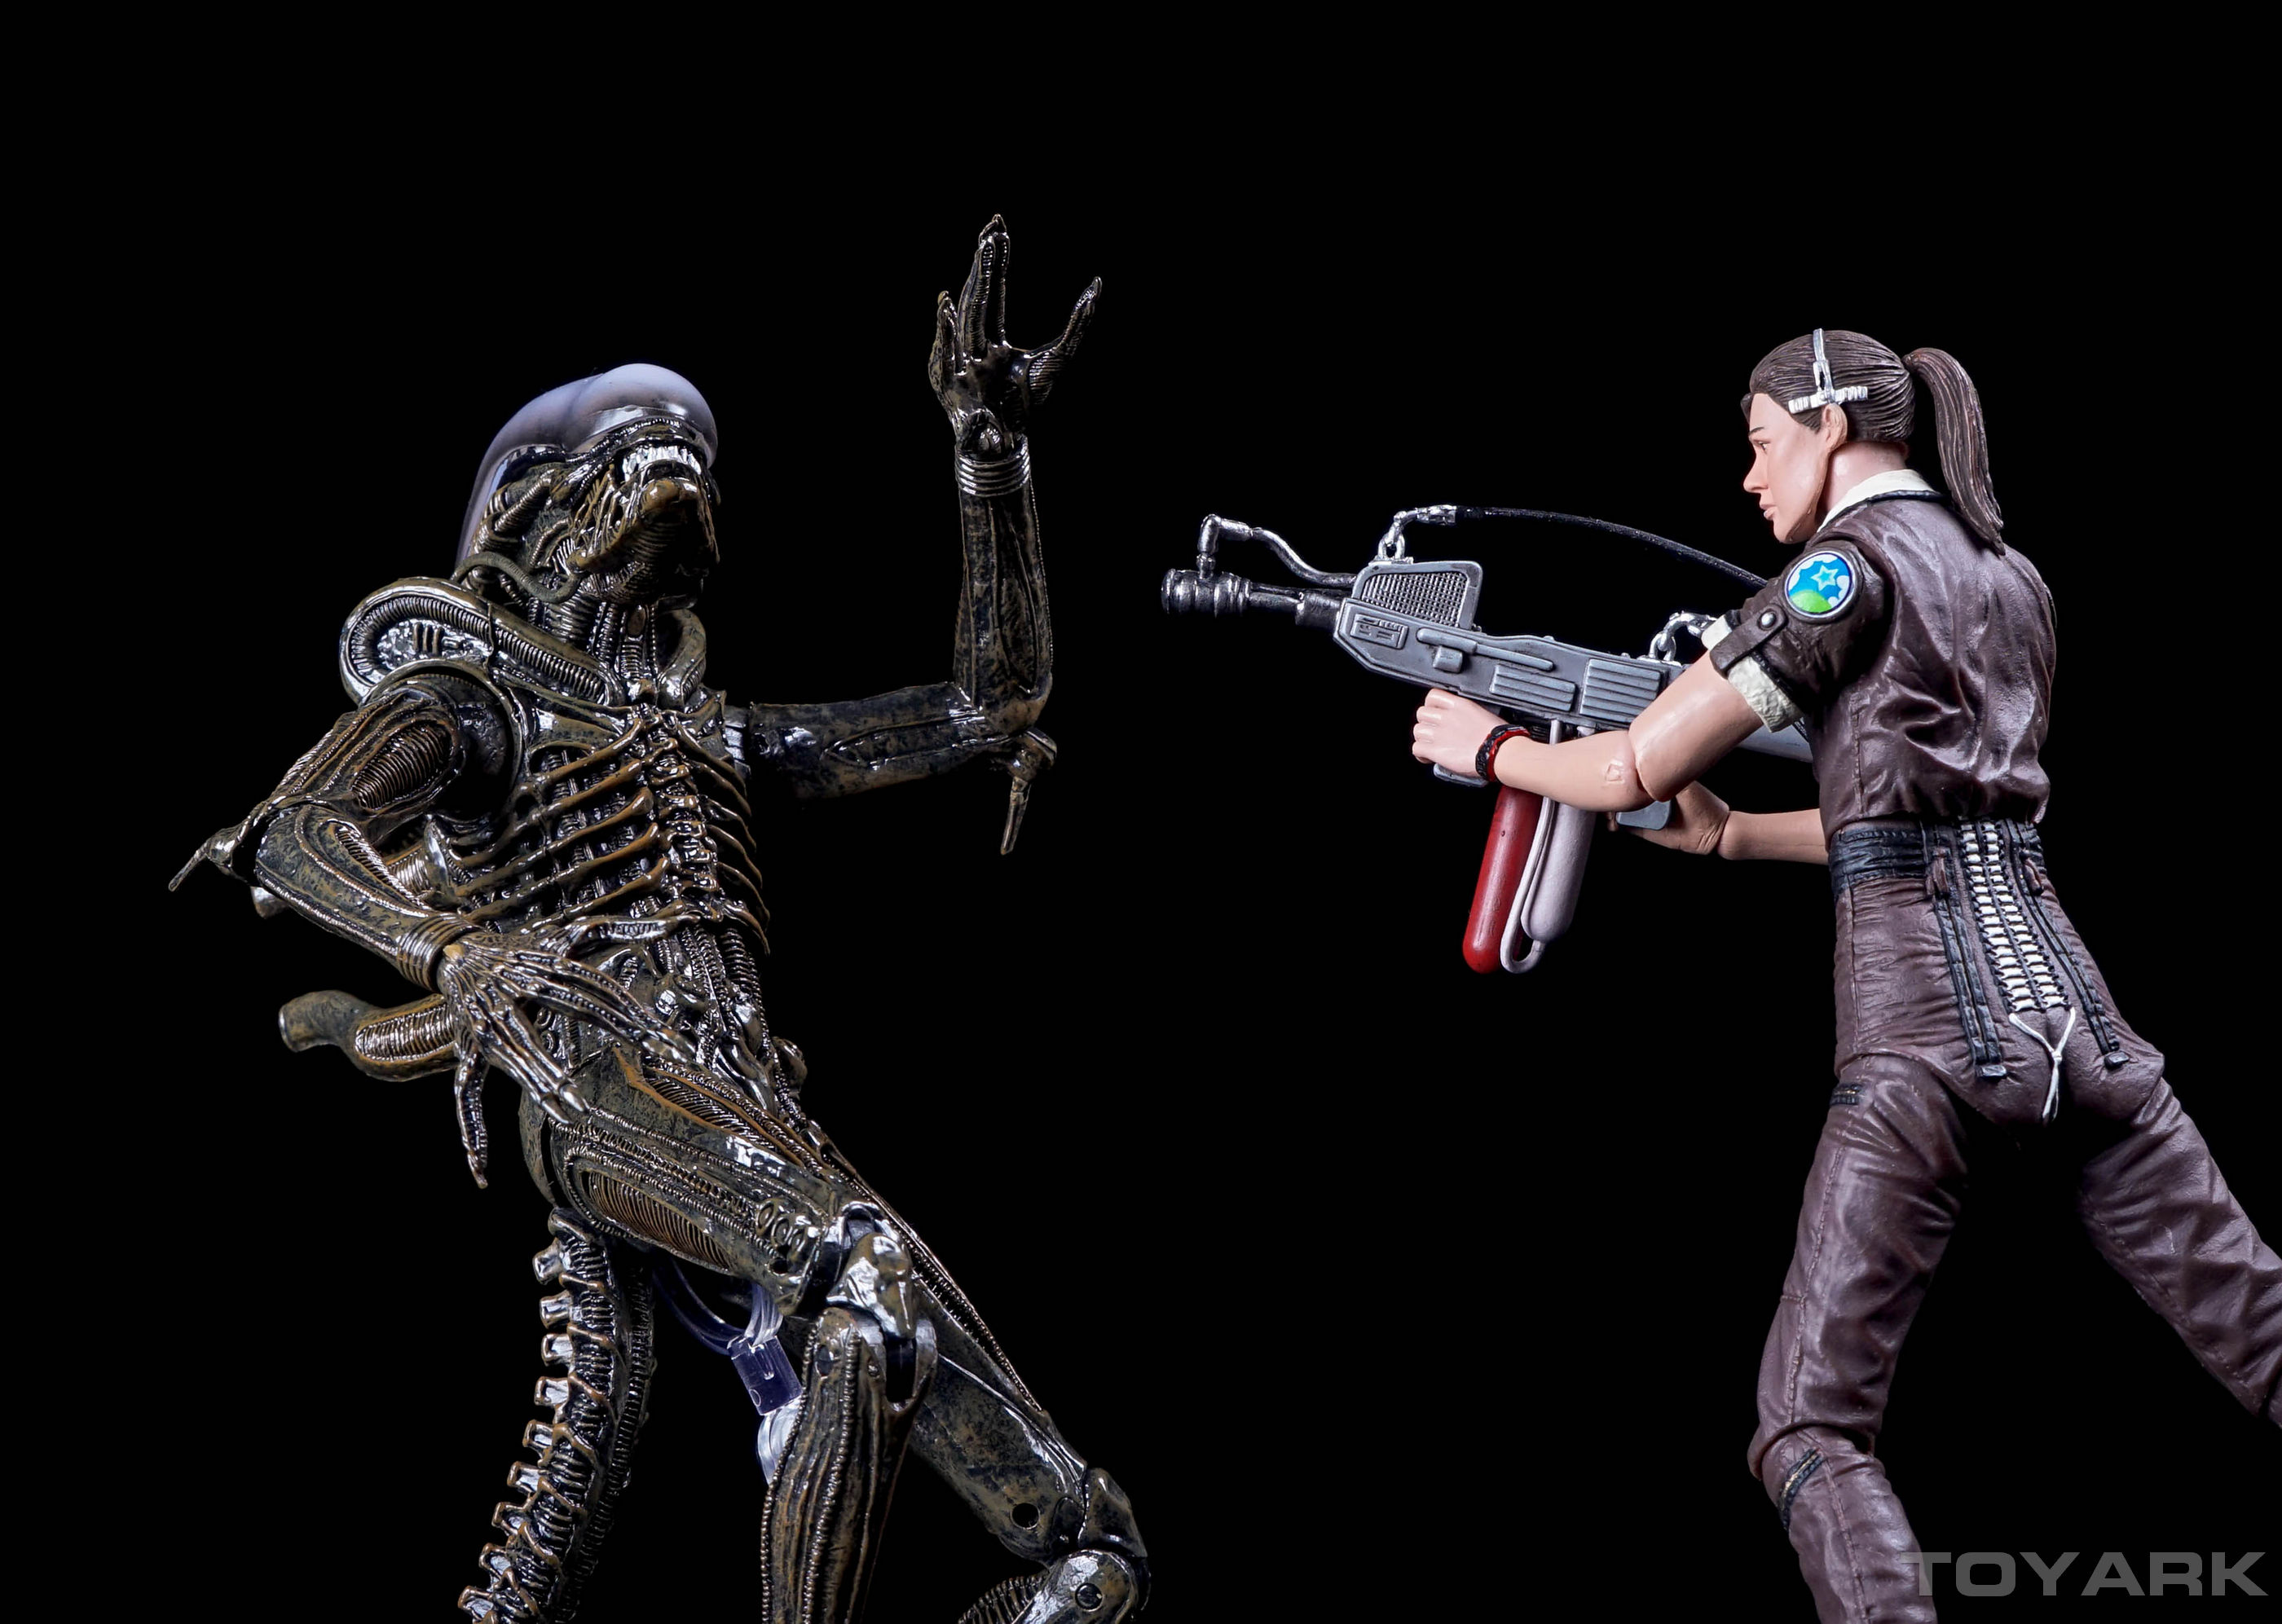 http://news.toyark.com/wp-content/uploads/sites/4/2015/12/NECA-Alien-Isolation-060.jpg